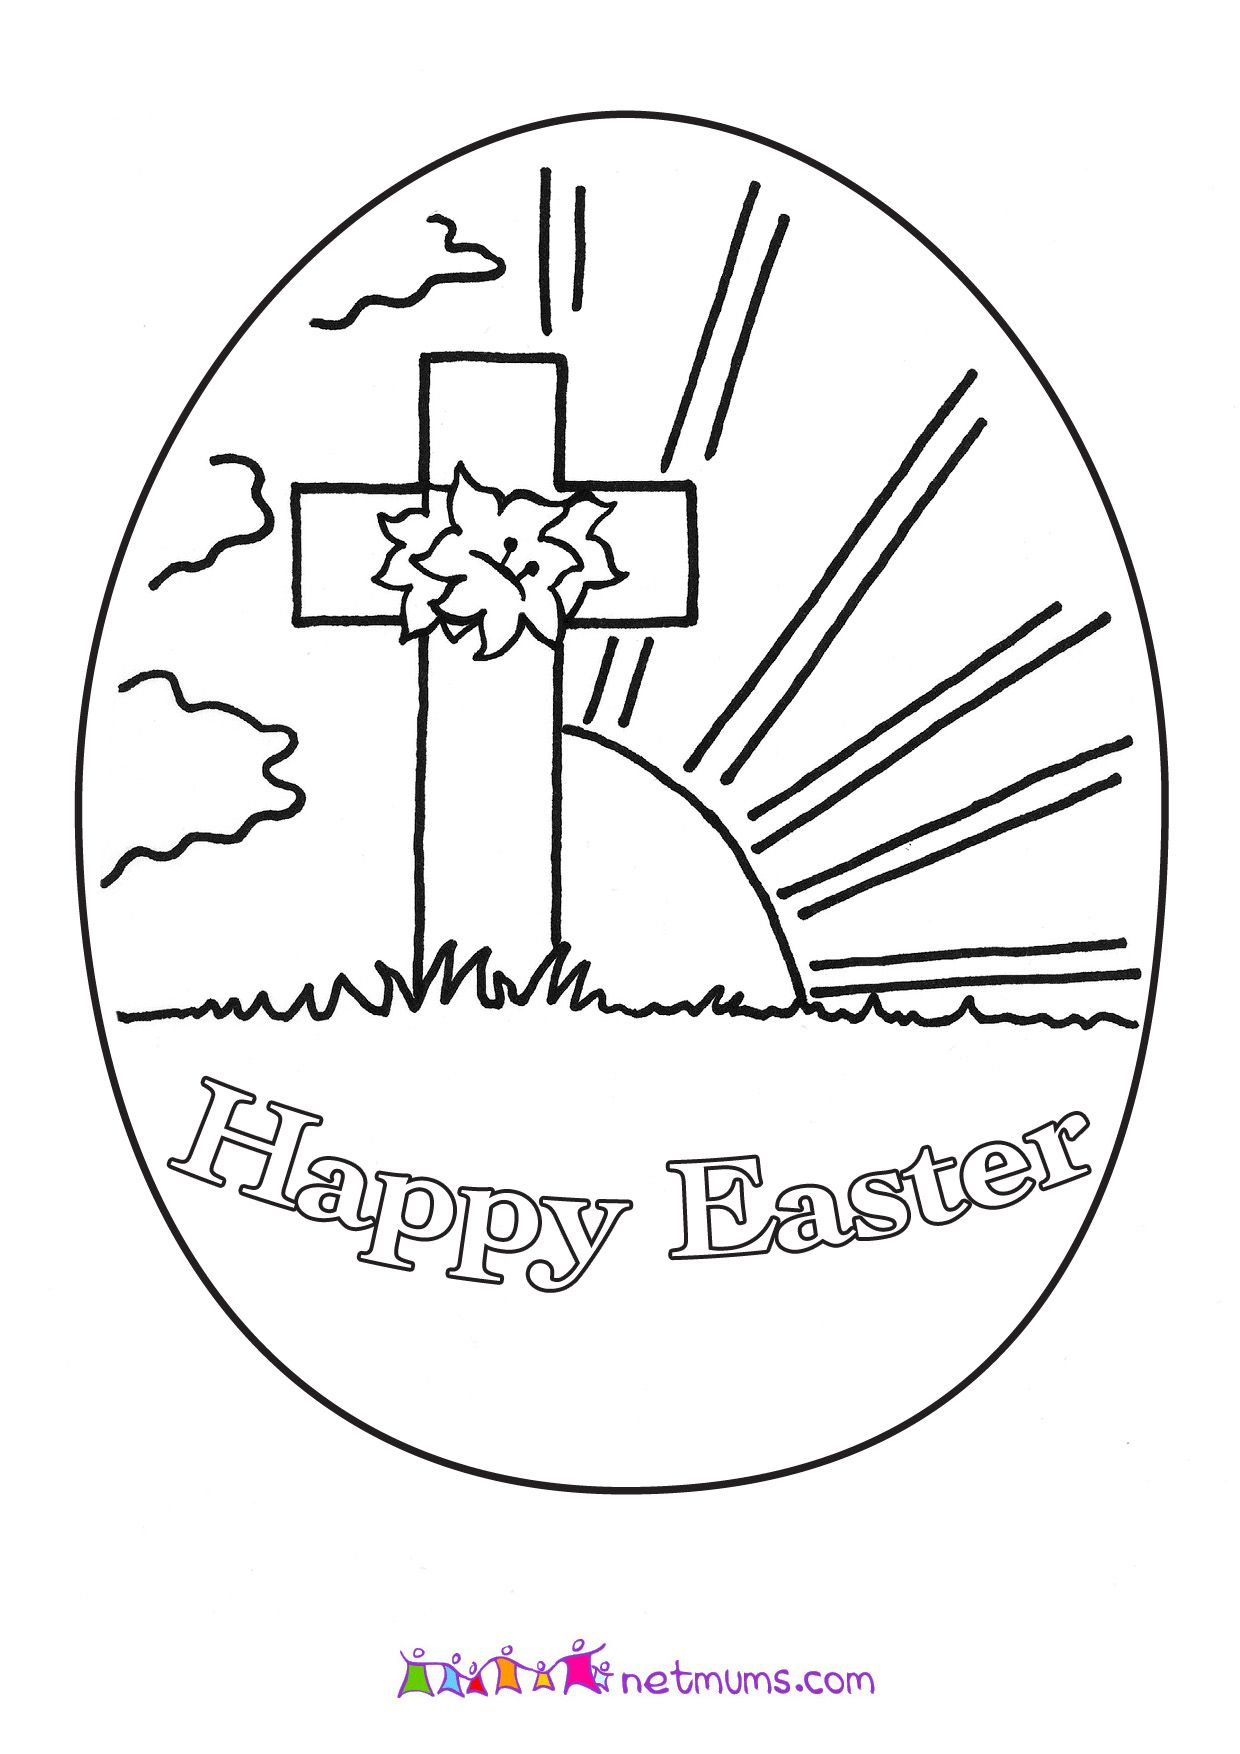 Printable Christian Easter Coloring Sheets : Yep, an Easter activity that DOESN T involve chocolate ... Easter, Easter colouring and Sunday ...